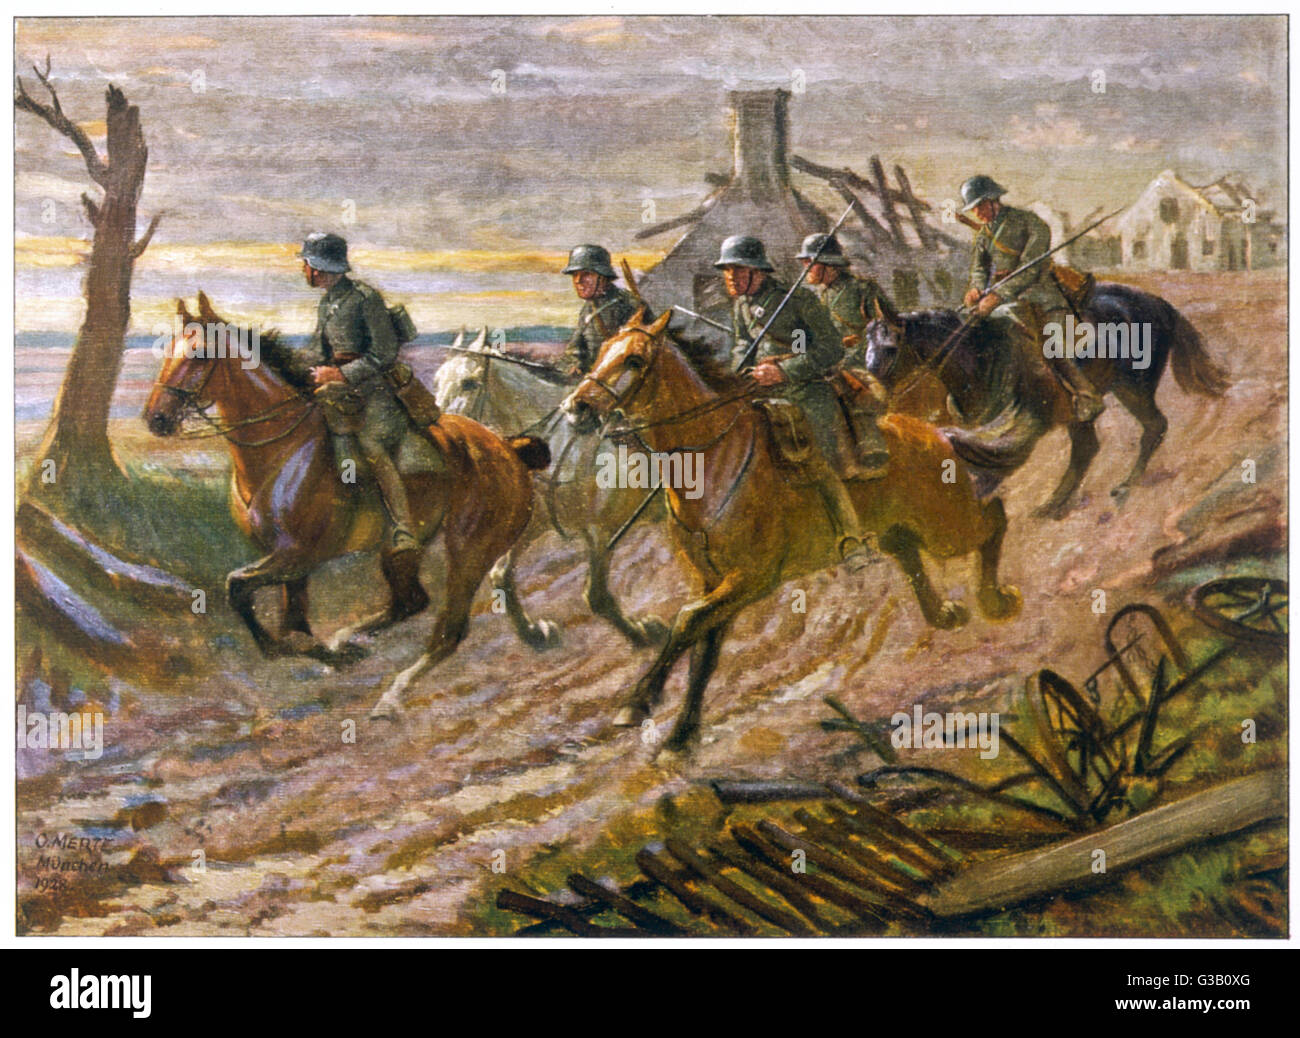 A German cavalry patrol ride  through the ruins of a  village.        Date: 1914 - 1918 Stock Photo